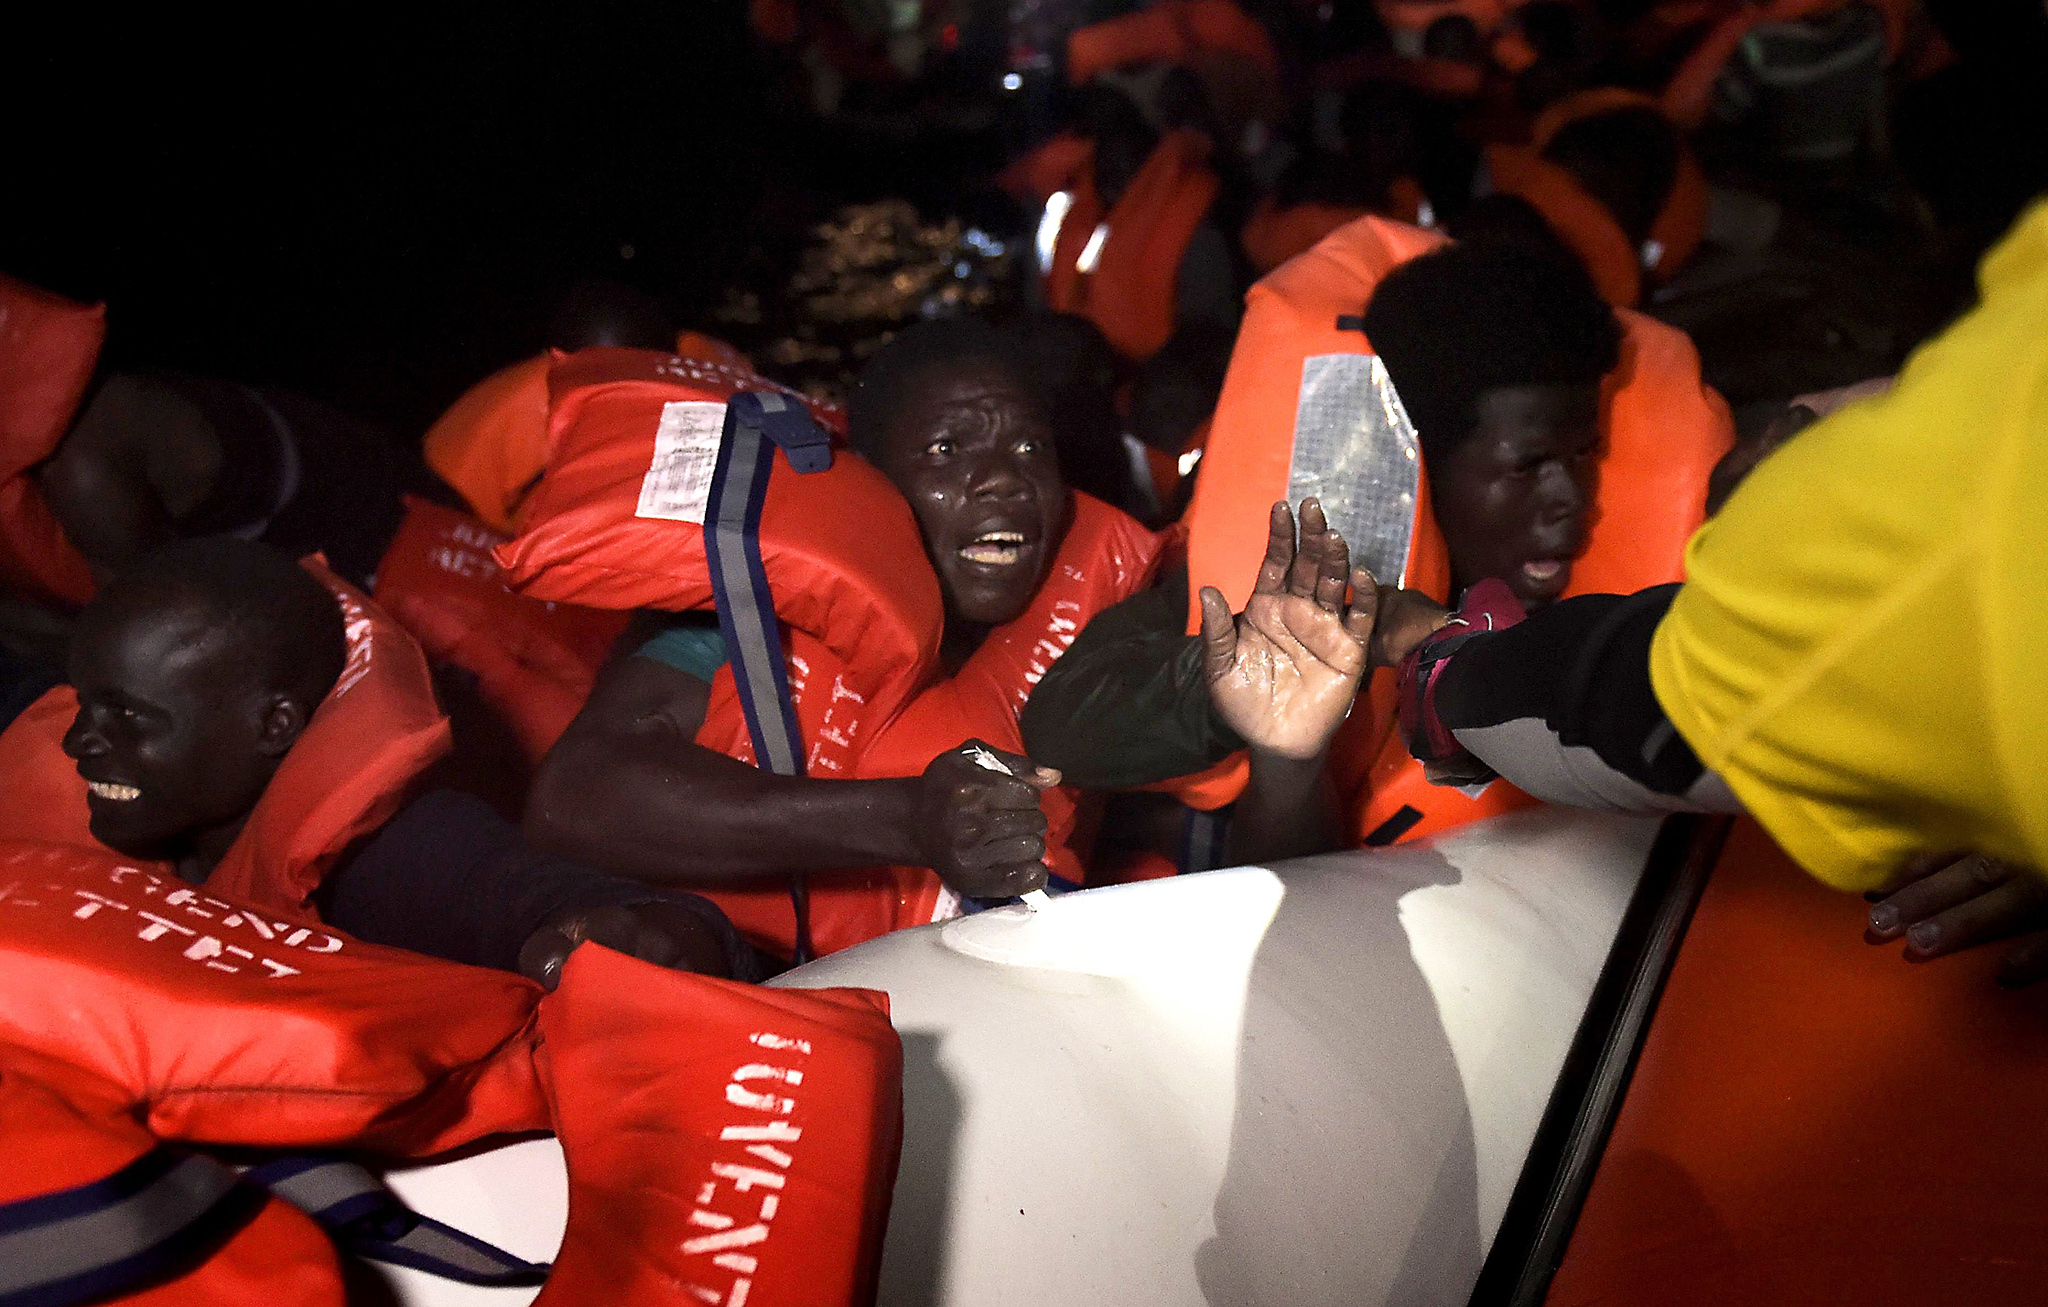 A migrant is rescued after the rubber boat he was in sunk some eight nautical miles off Libya's Mediterranean coastline on October 12, 2016. A growing number of people are attempting the treacherous sea journey from Libya or Egypt, after the closure of the Balkan migrant trail route leading from Greece to western Europe. / AFP PHOTO / ARIS MESSINISARIS MESSINIS/AFP/Getty Images